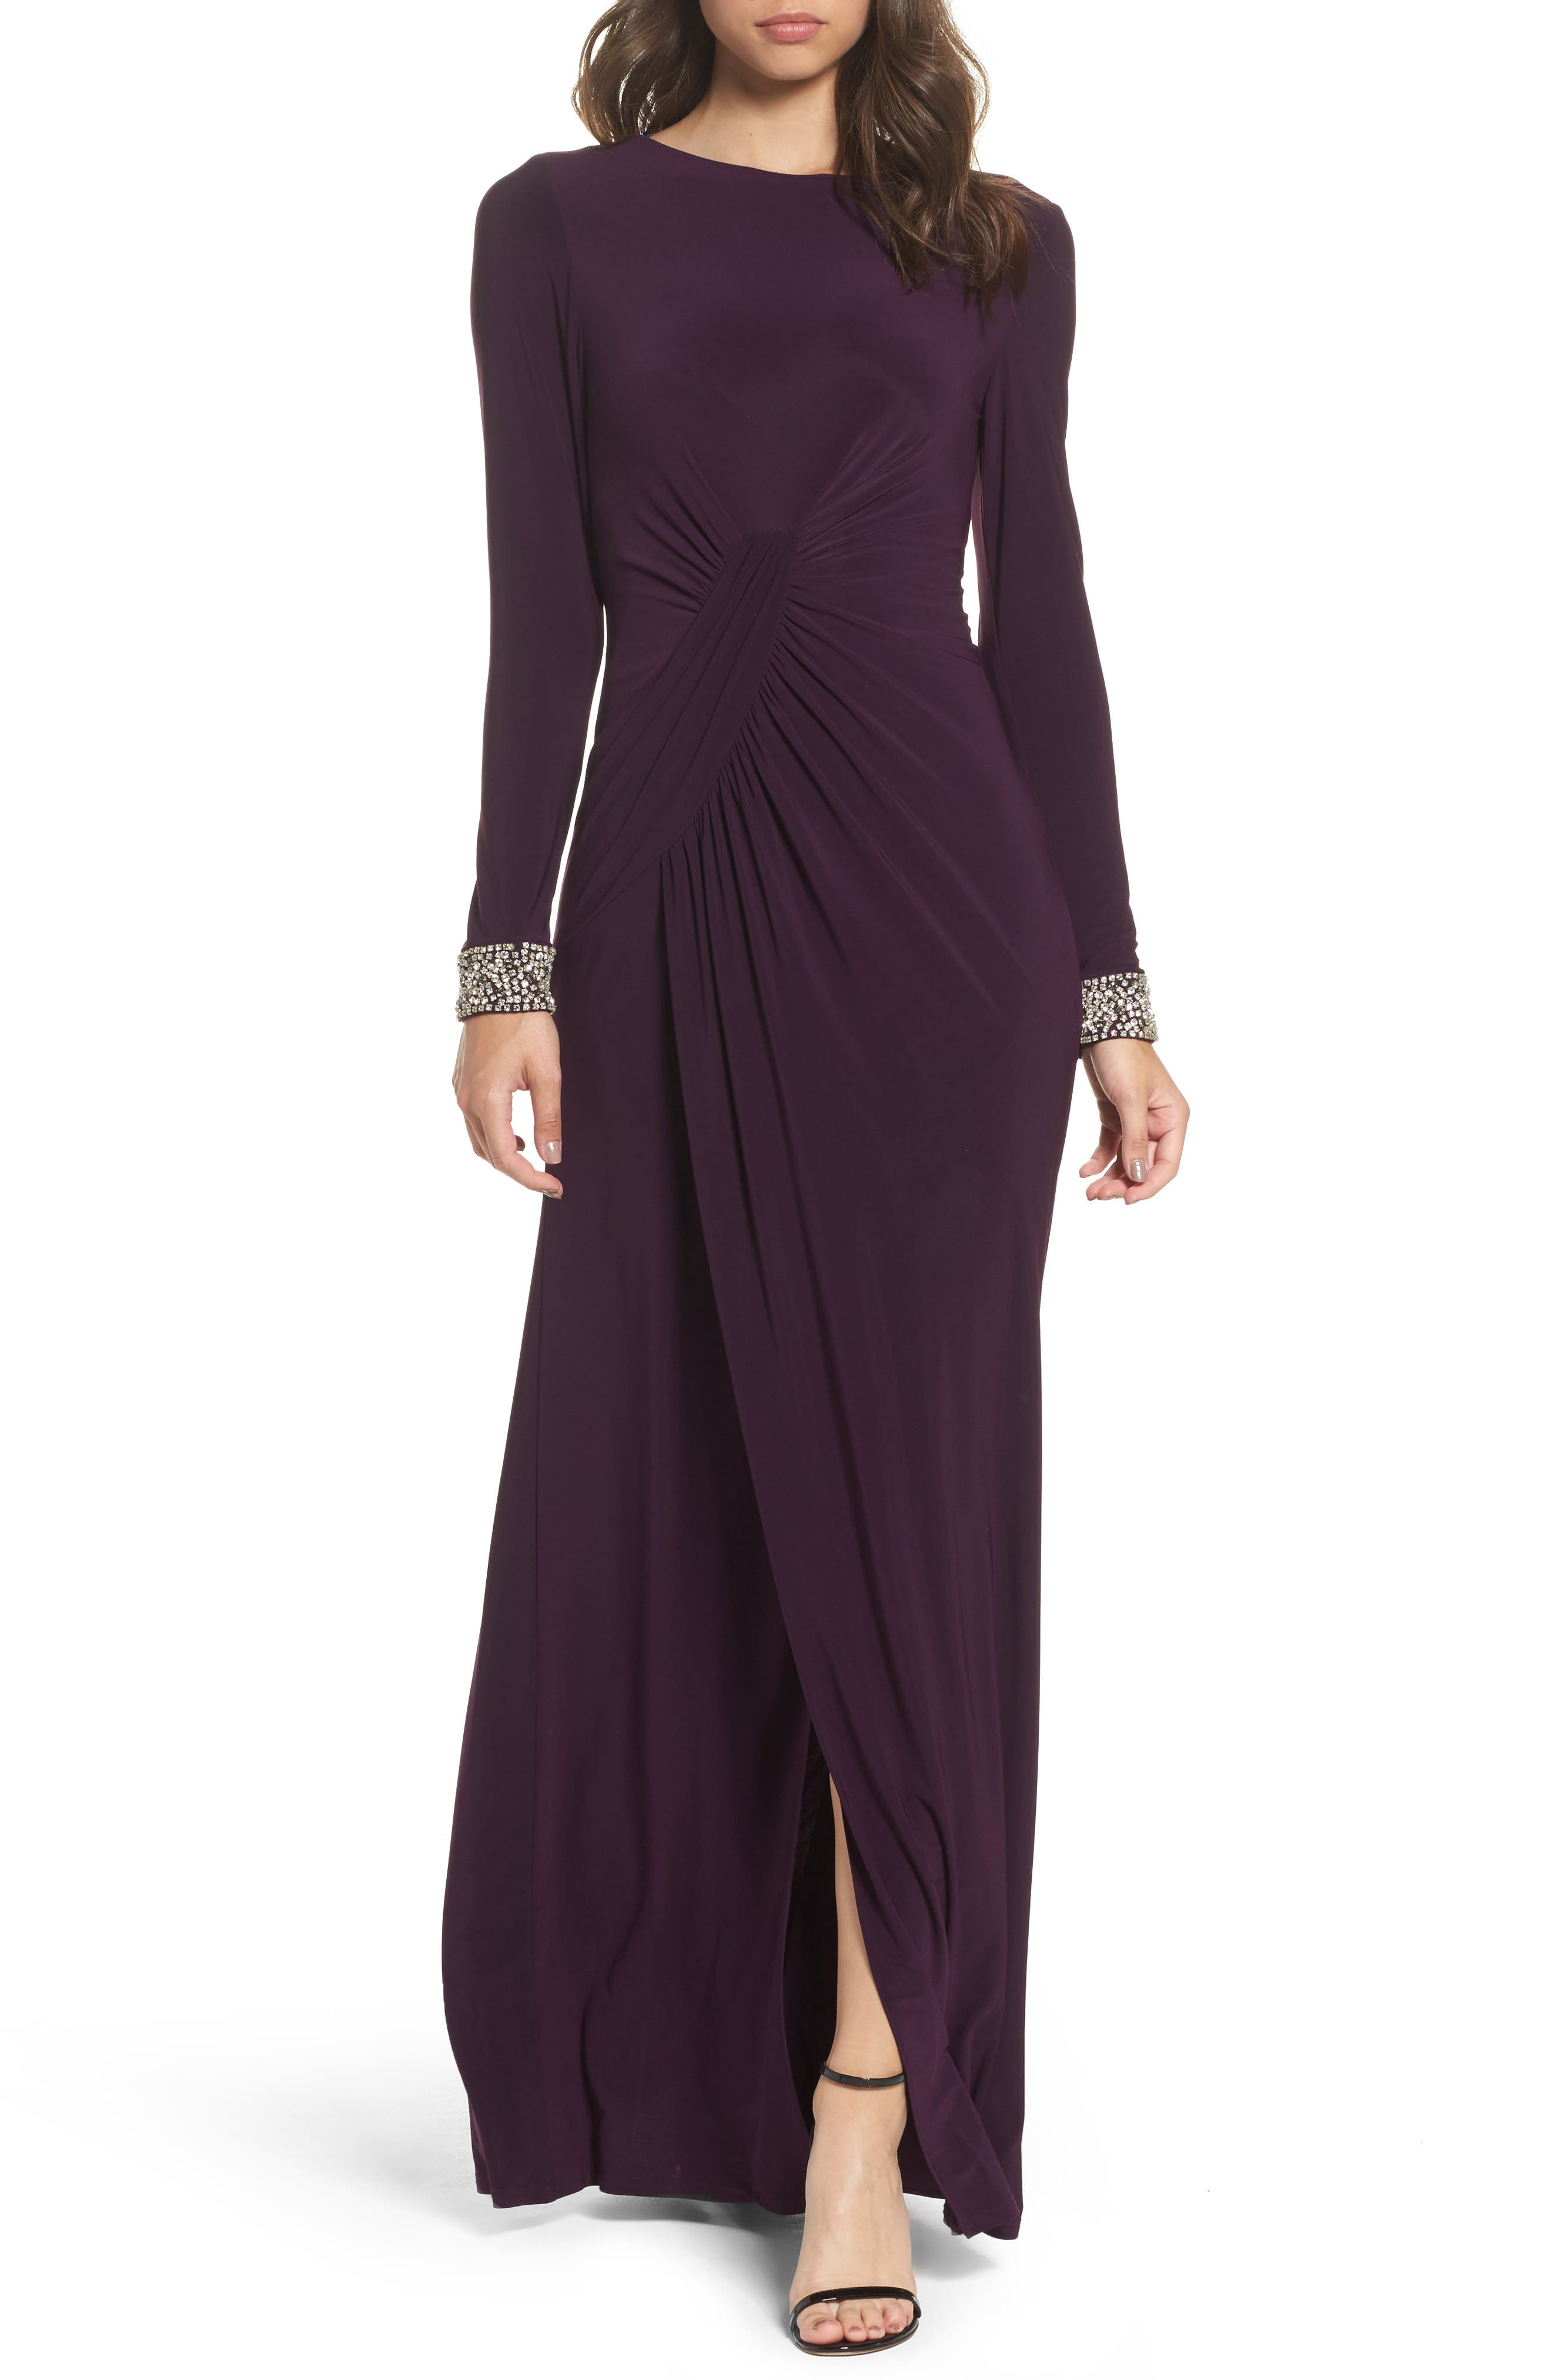 VINCE CAMUTO, Beaded Cuff Ruched Jersey Gown, Main thumbnail 1, color, 505